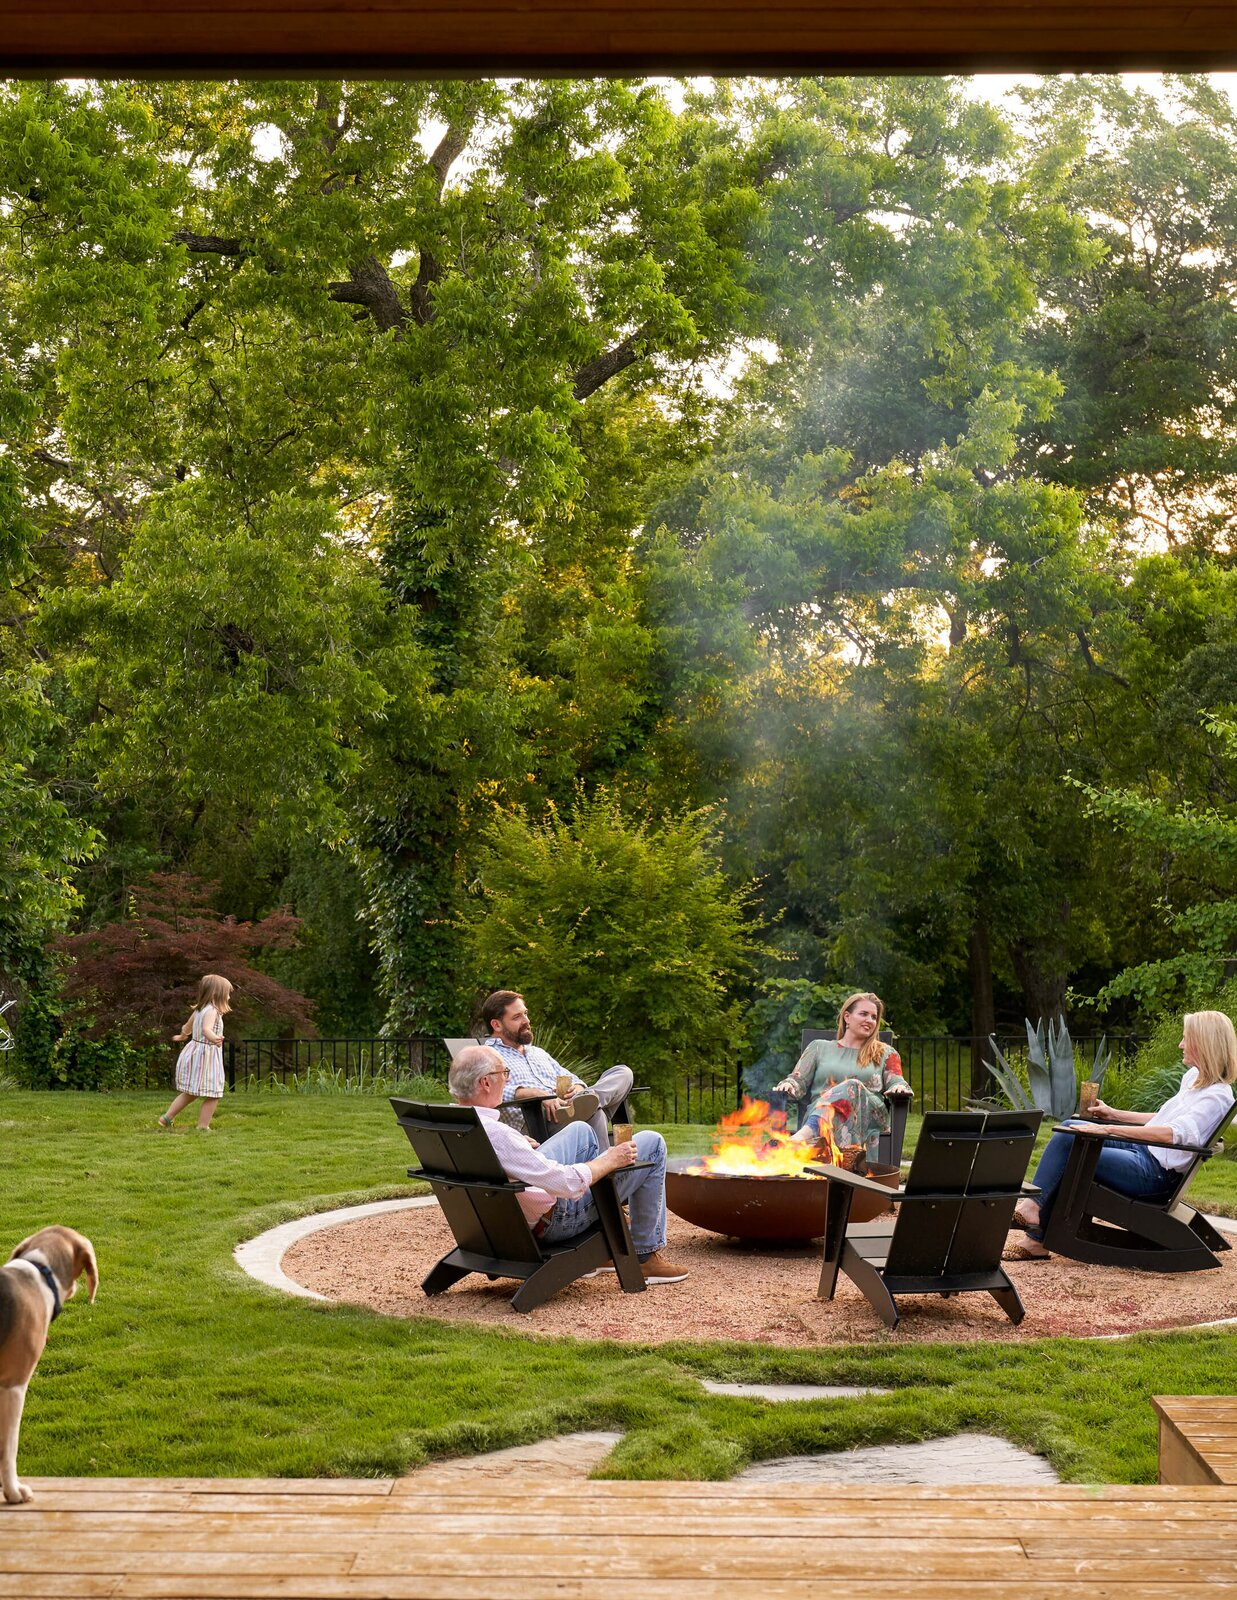 Backyard fire pit at River House 2 by Bentley Tibbs Architect